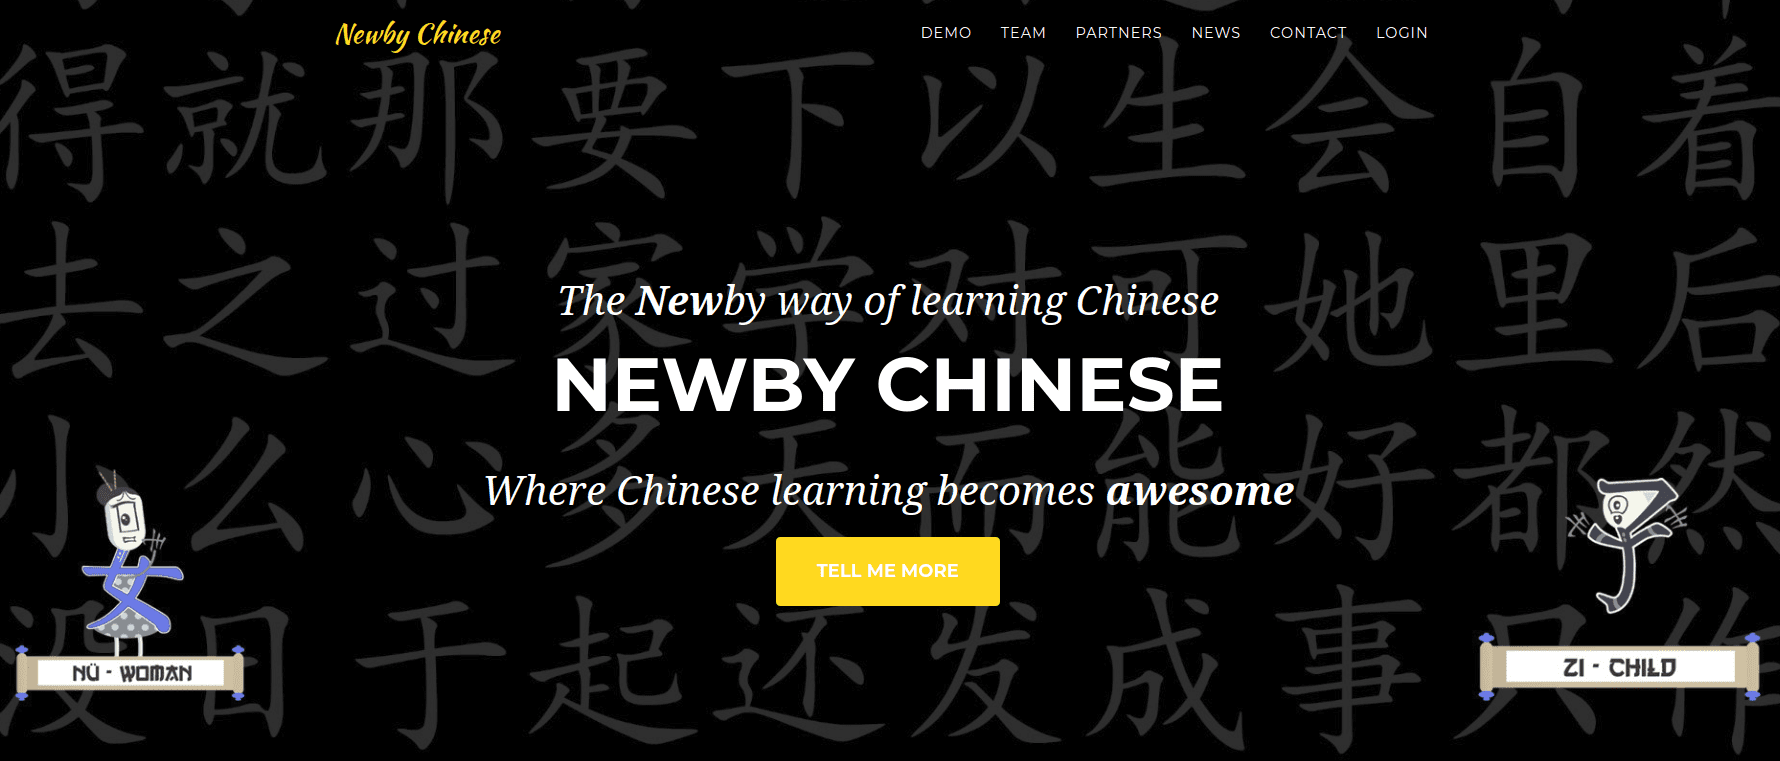 Galway News - Business - Startups to watch: Newby Chinese